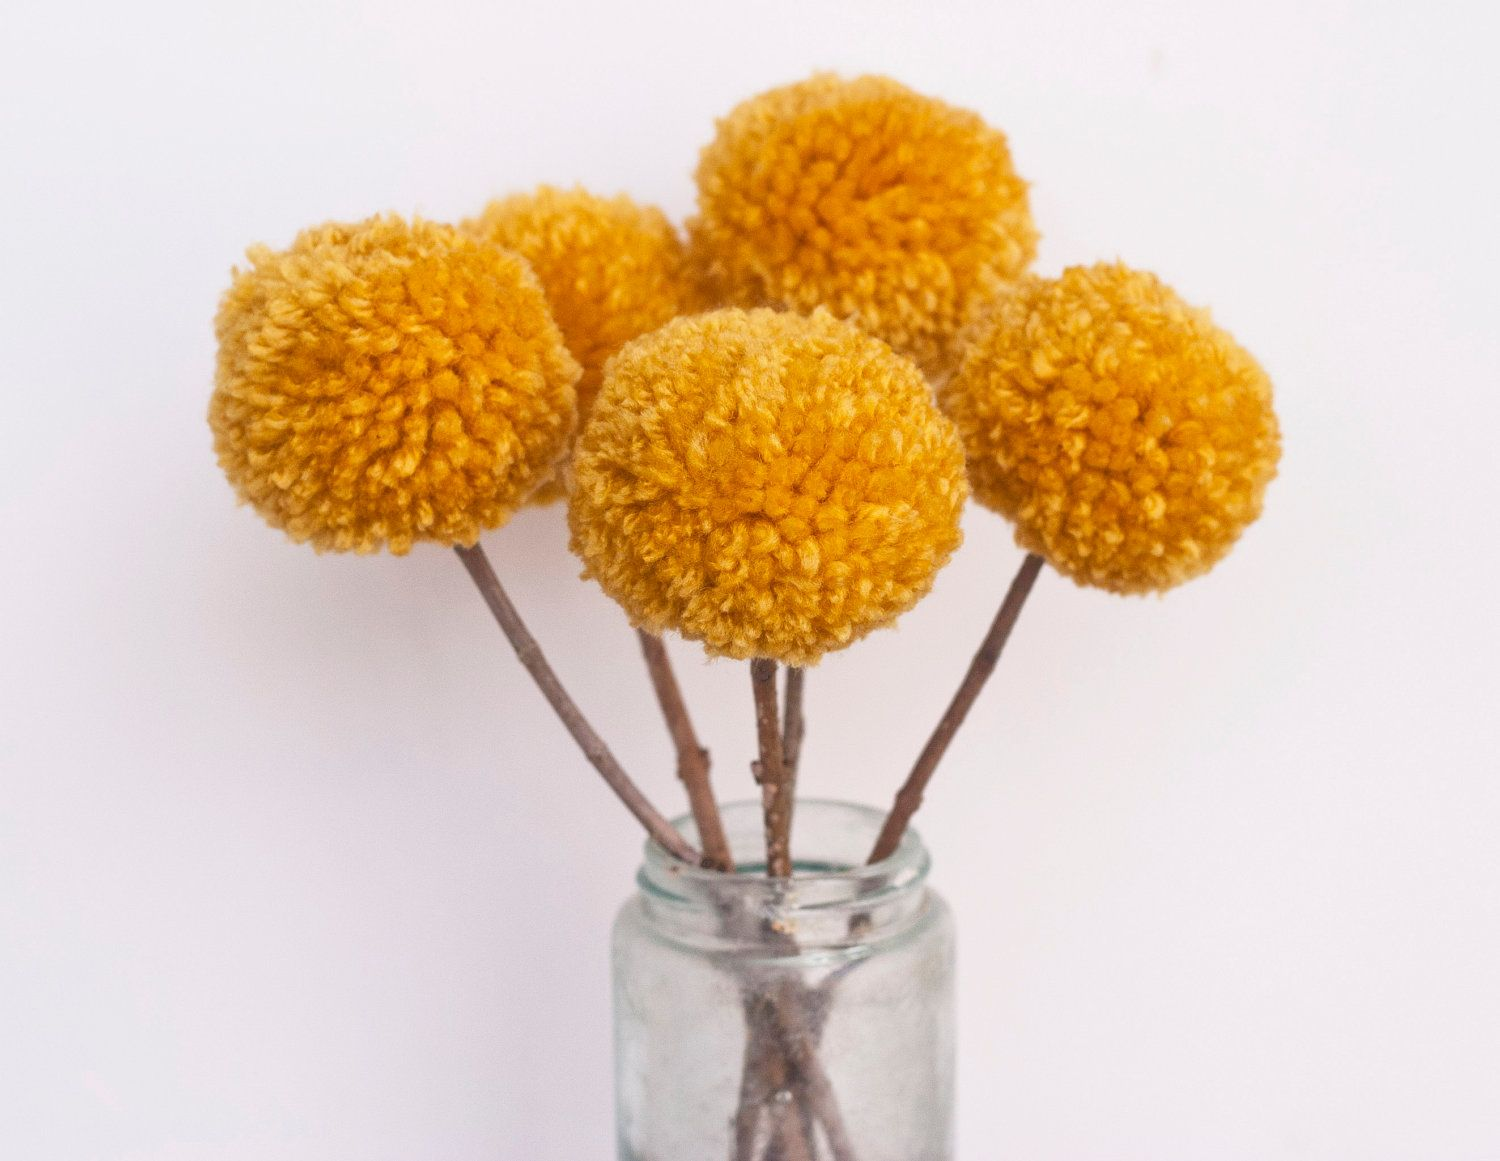 Cute table decor homemade pom pom flowers with yarn sticks and cute table decor homemade pom pom flowers with yarn sticks and hot glue olur wedding color is yellow mightylinksfo